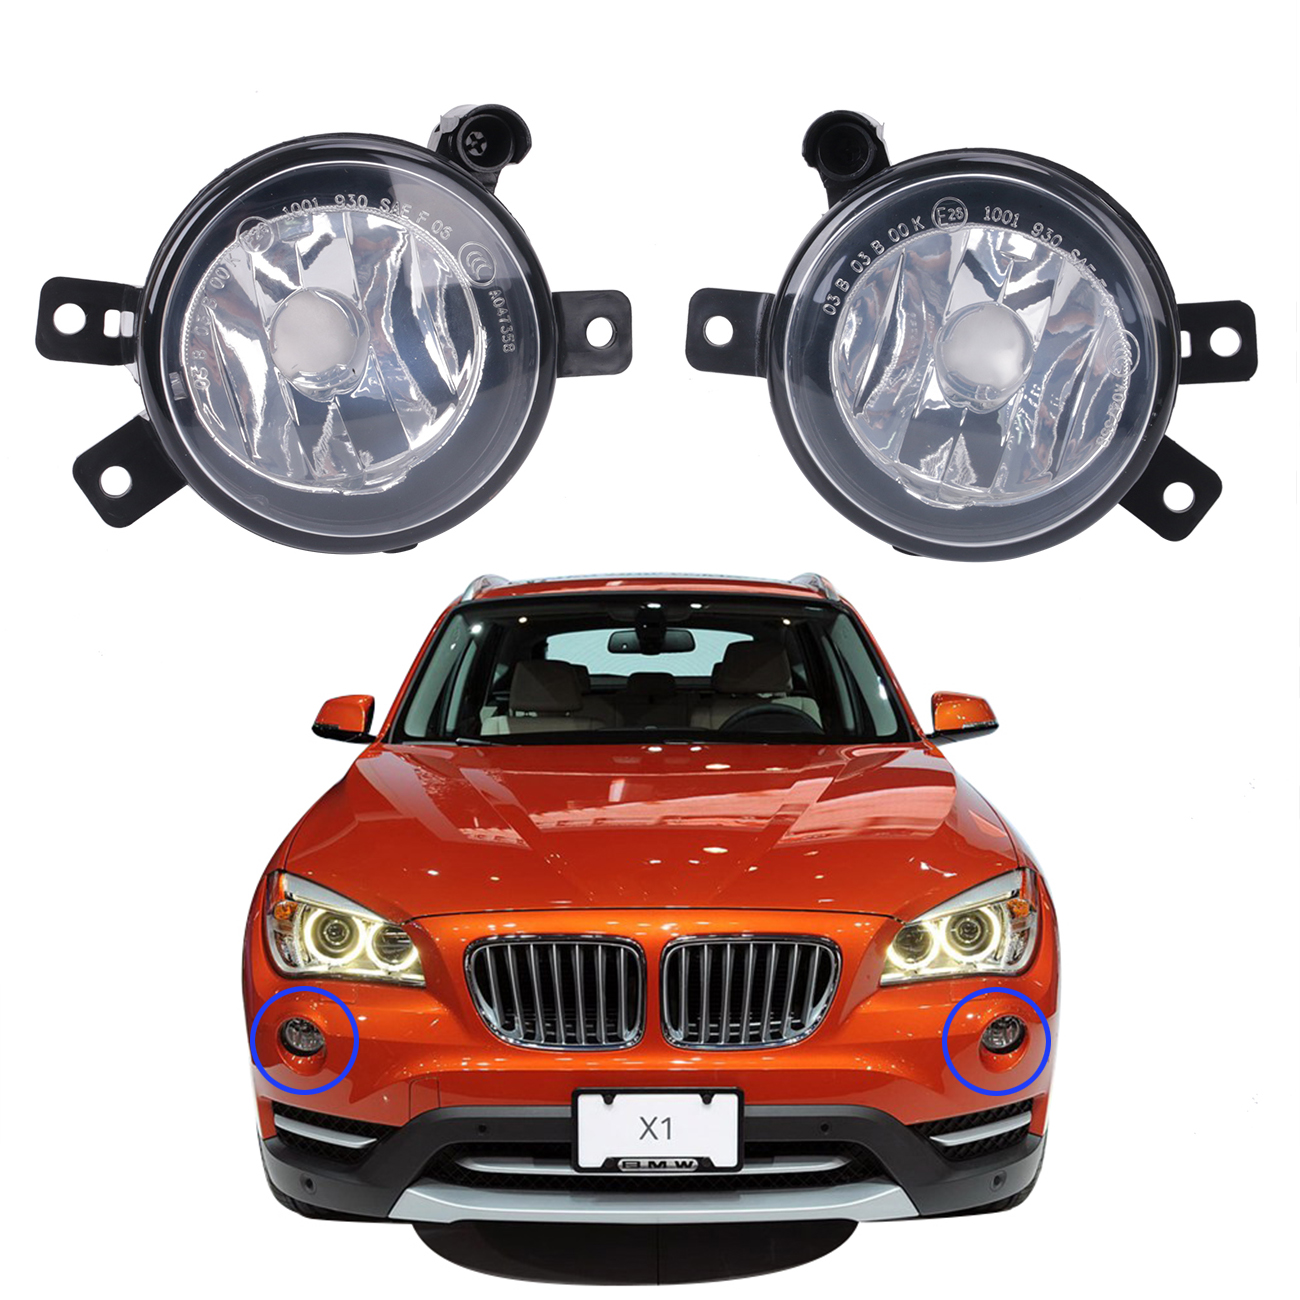 For BMW X1 E84 Sport Model 2010-2015 Left+Right Front Fog Lights Clear Lamps Foglamp Covers OEM 63172993525 63172993526 #W089